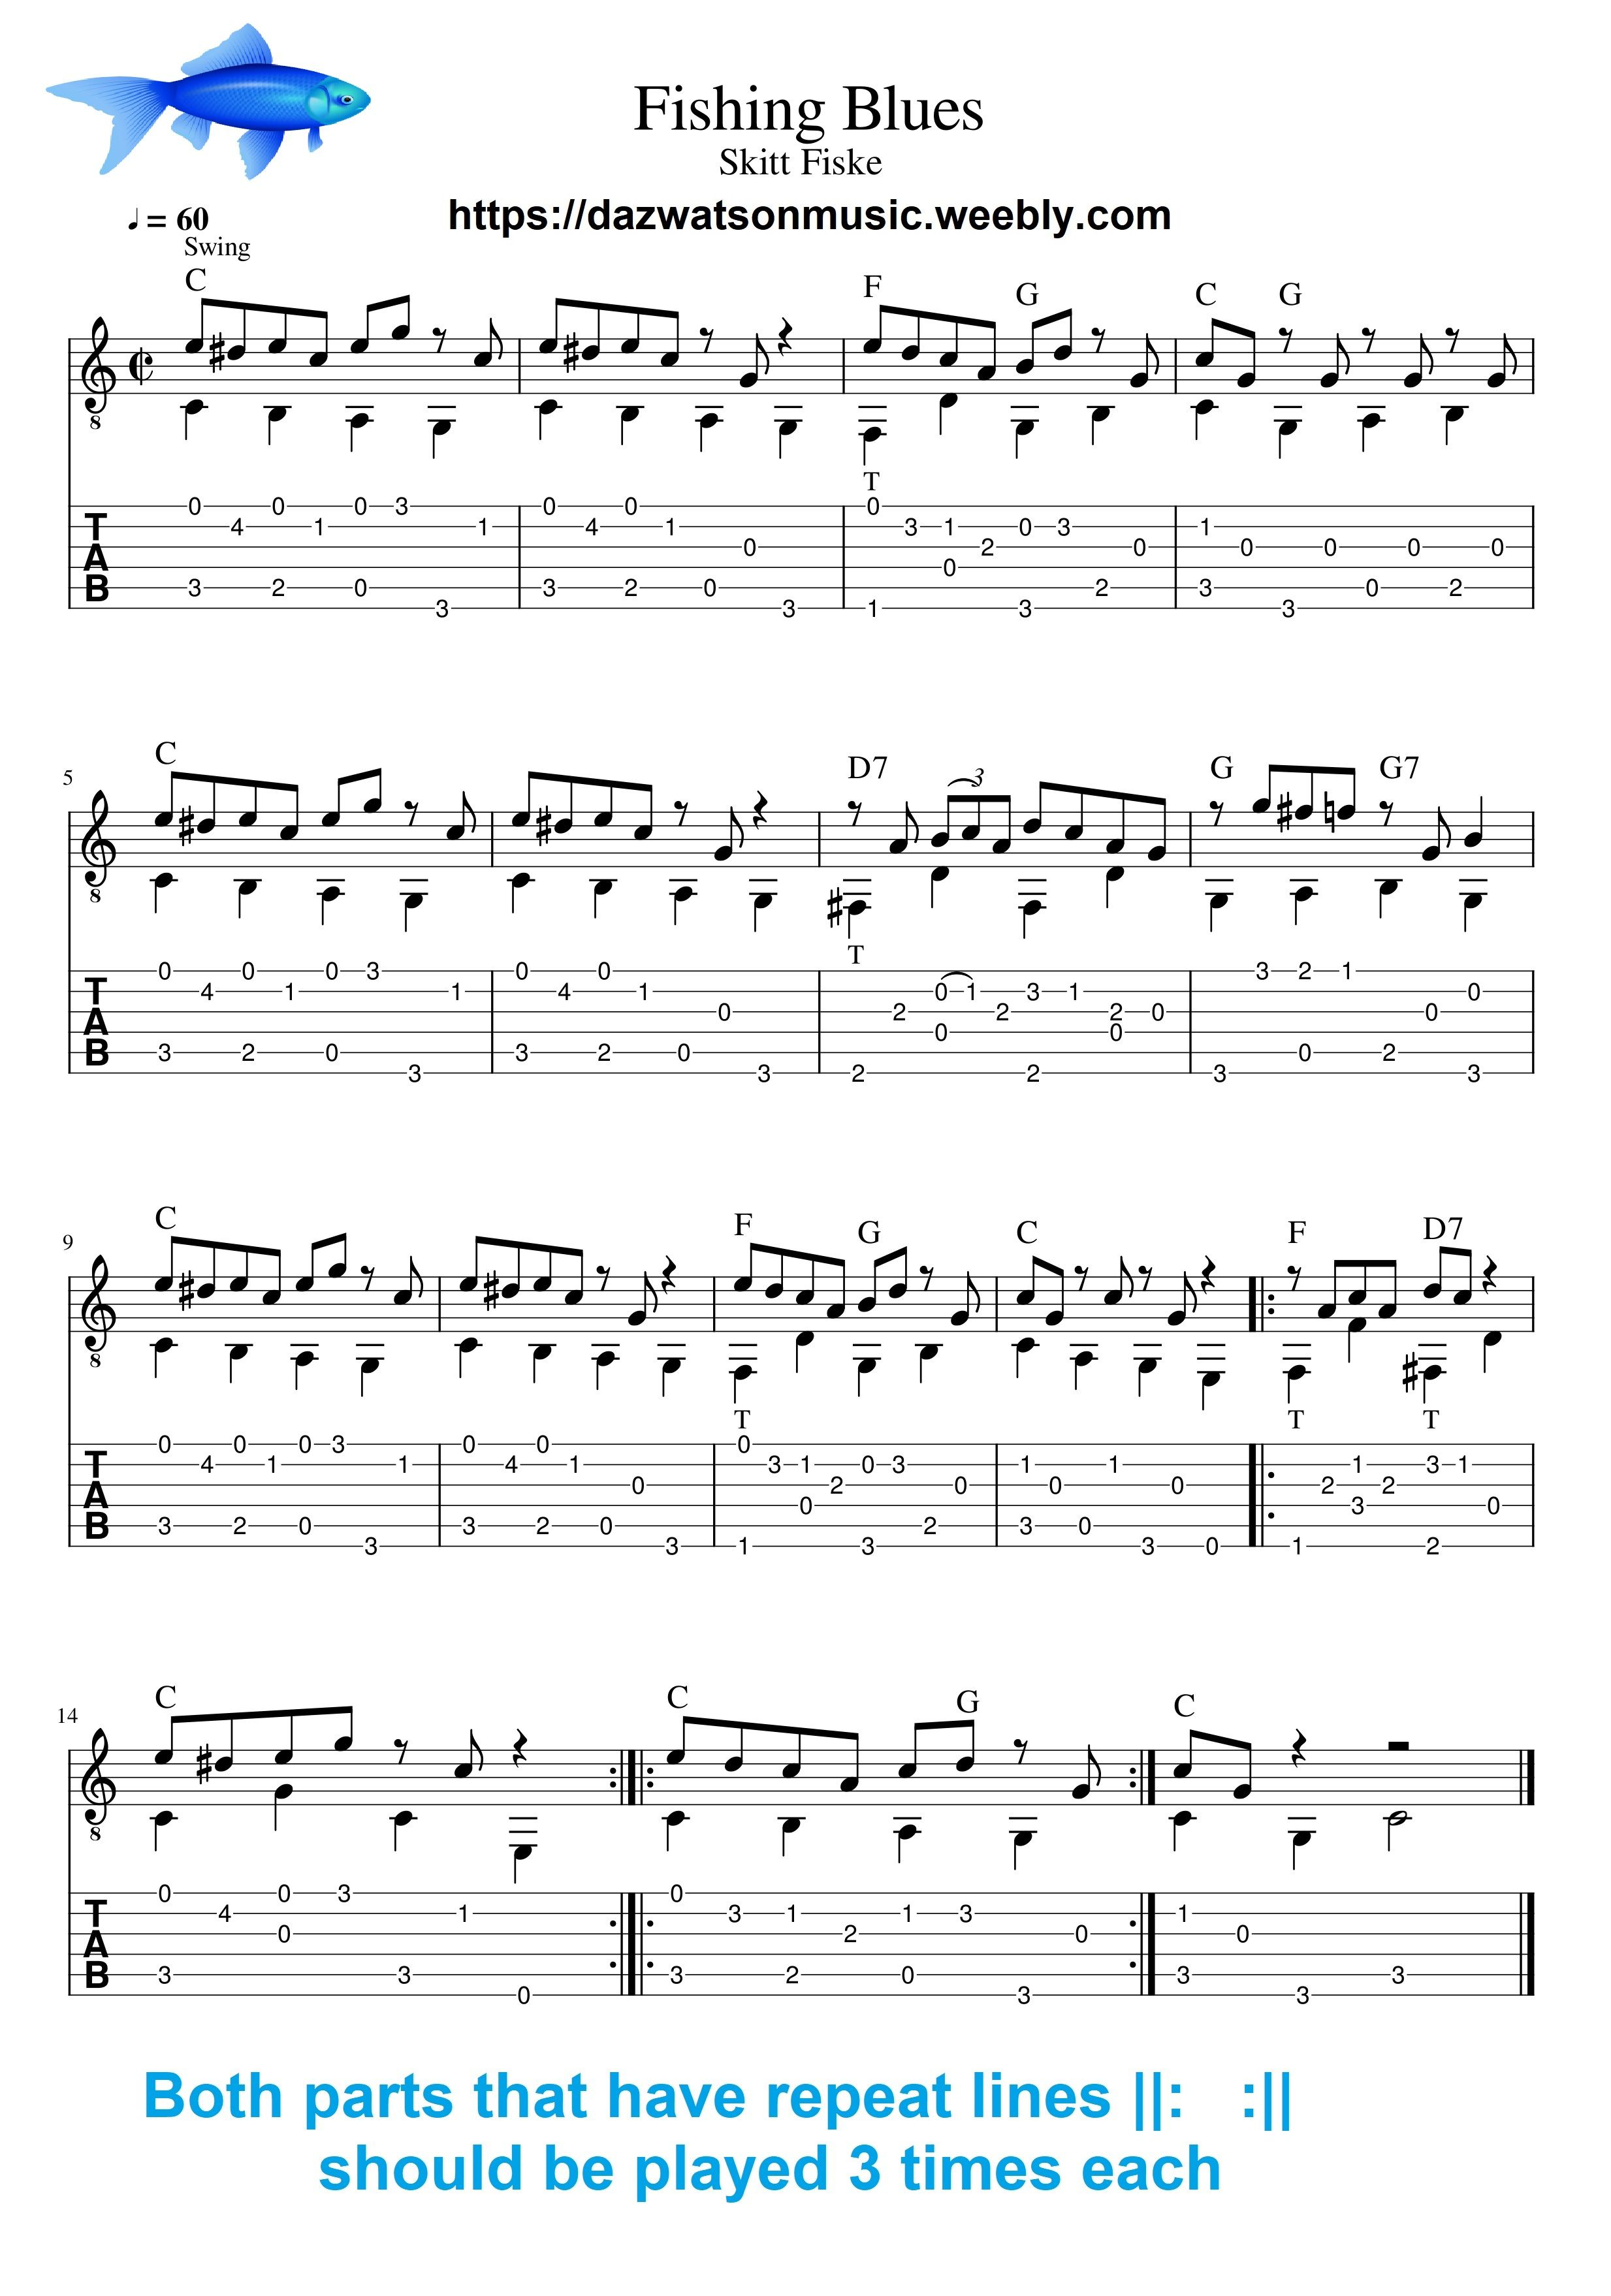 Fishing Blues Easy With Images Guitar Tabs Blues Guitar